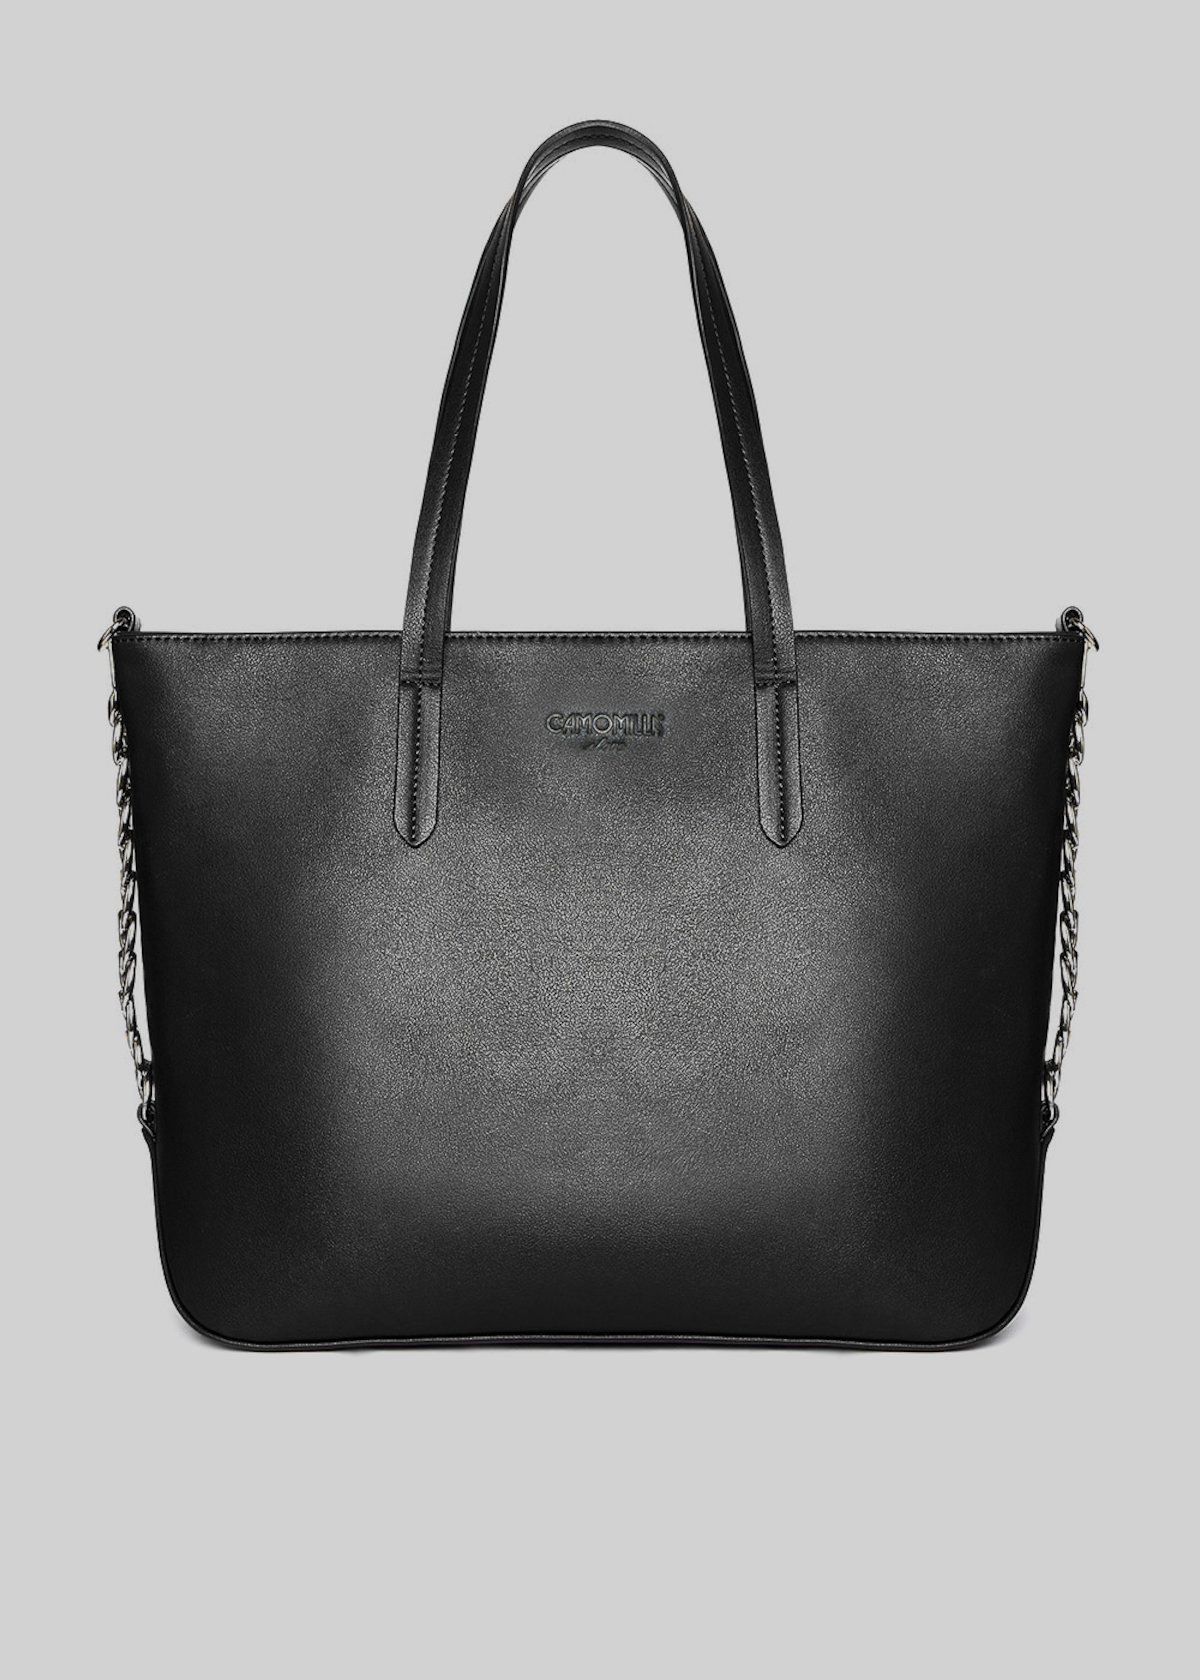 Tote bag Blumy in ecopelle con dettaglio catena - Black